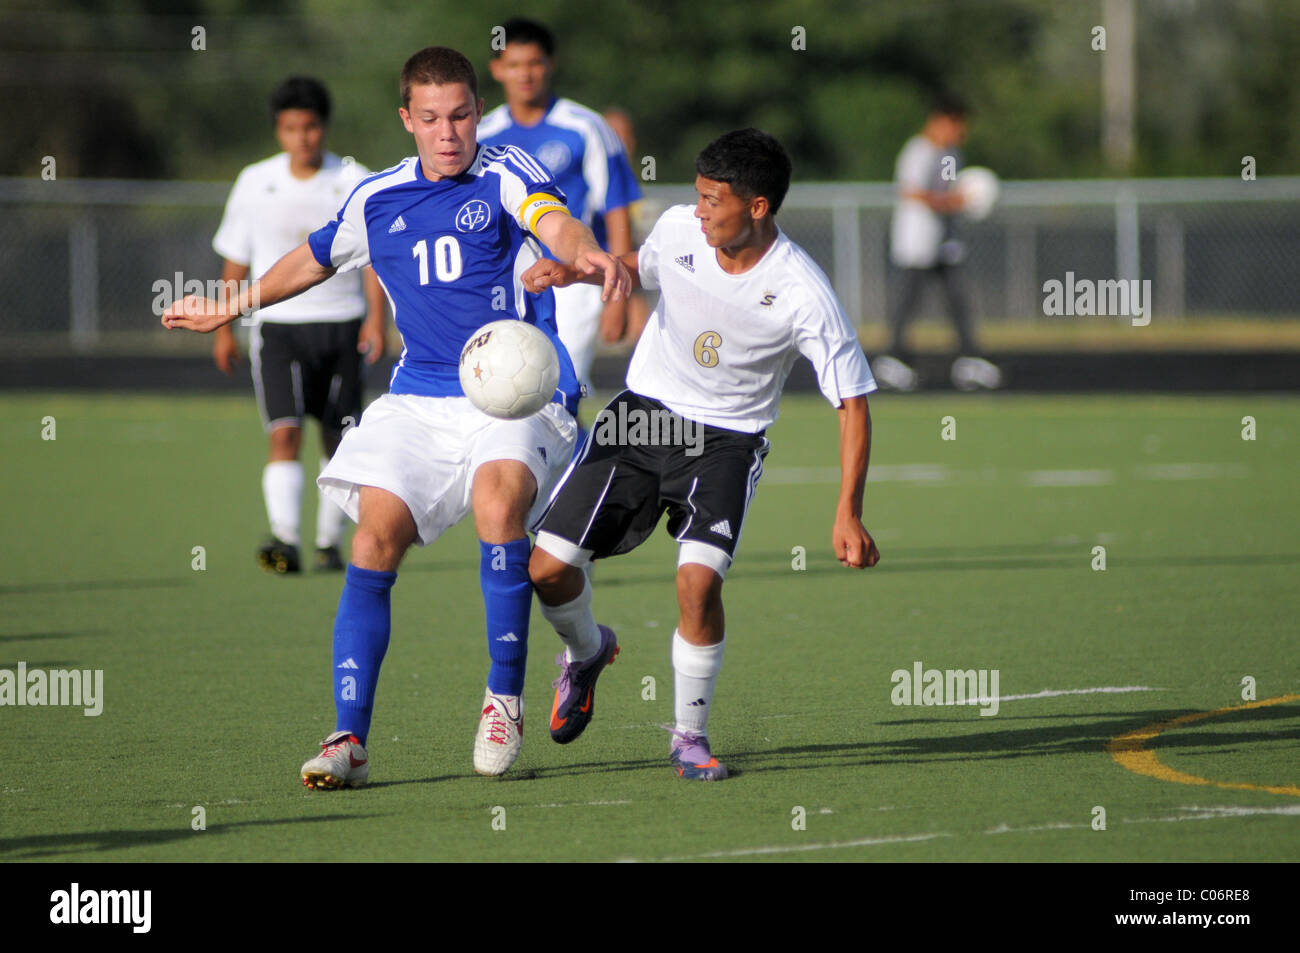 Players battle for possession of the ball during a high school soccer match. USA. - Stock Image